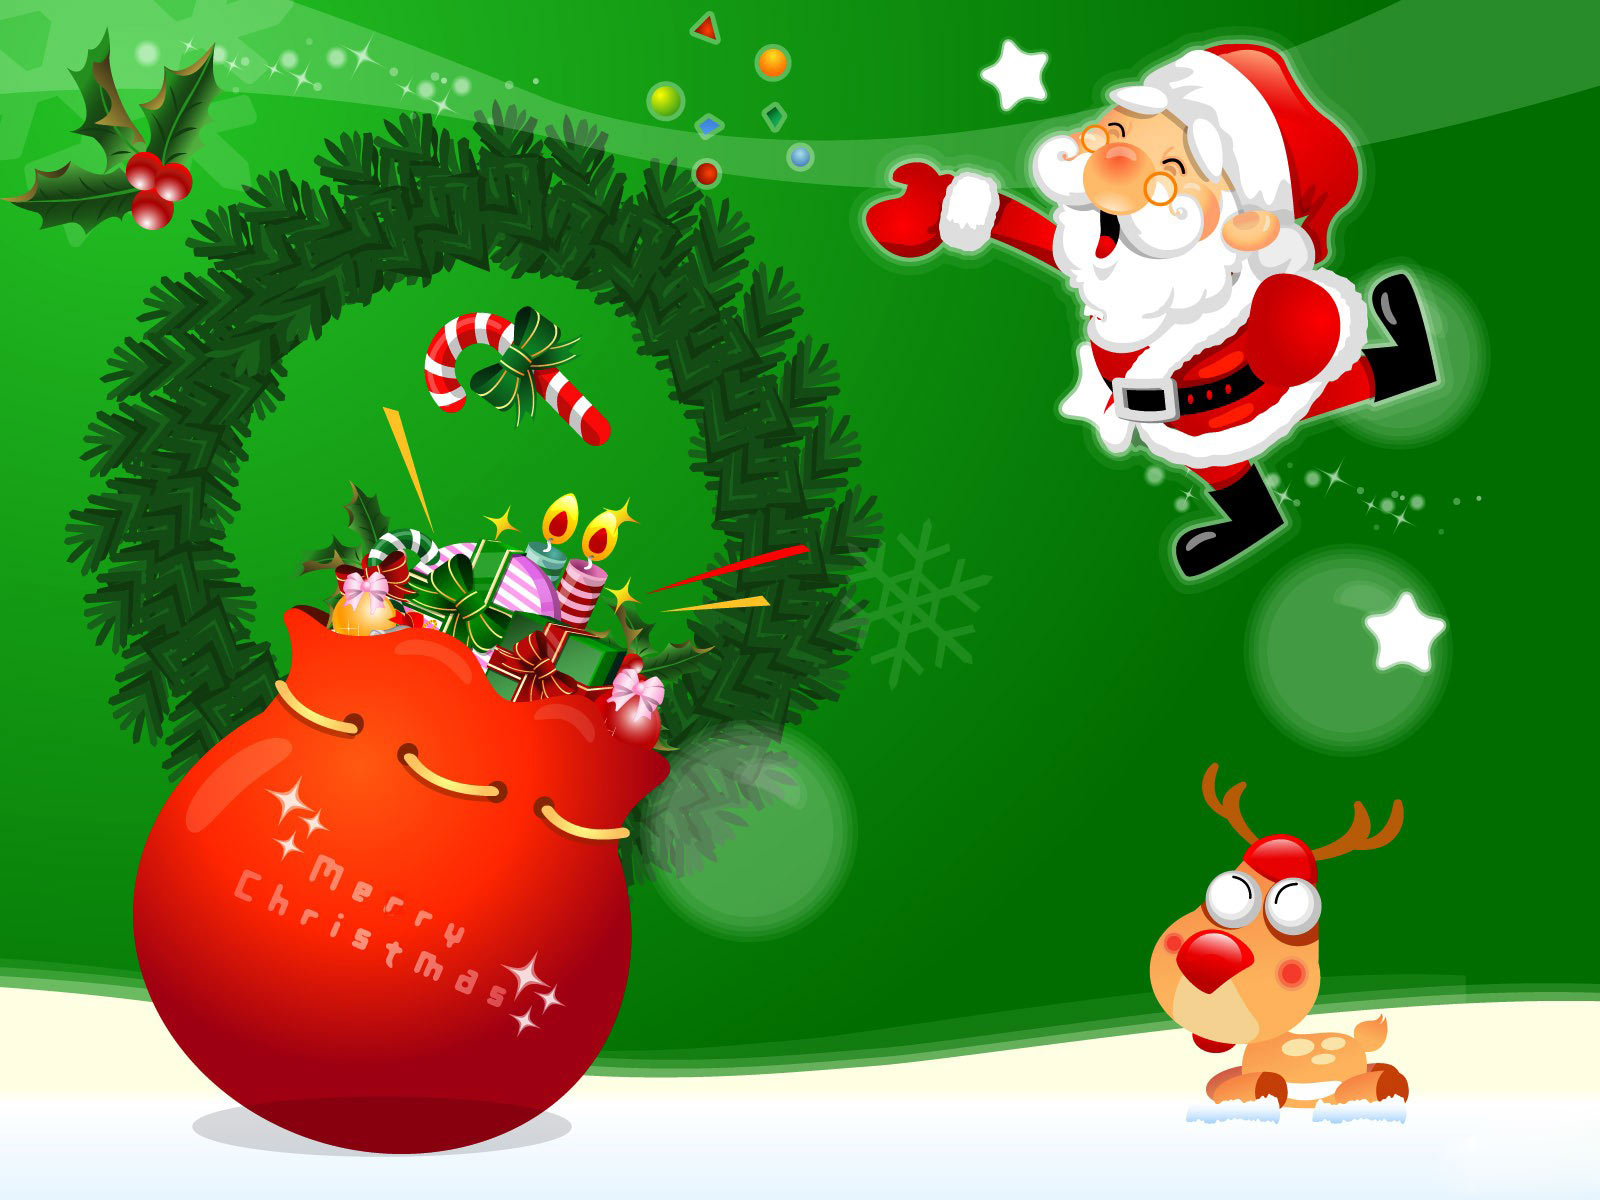 Christmas Pc Wallpaper Free hd gallery